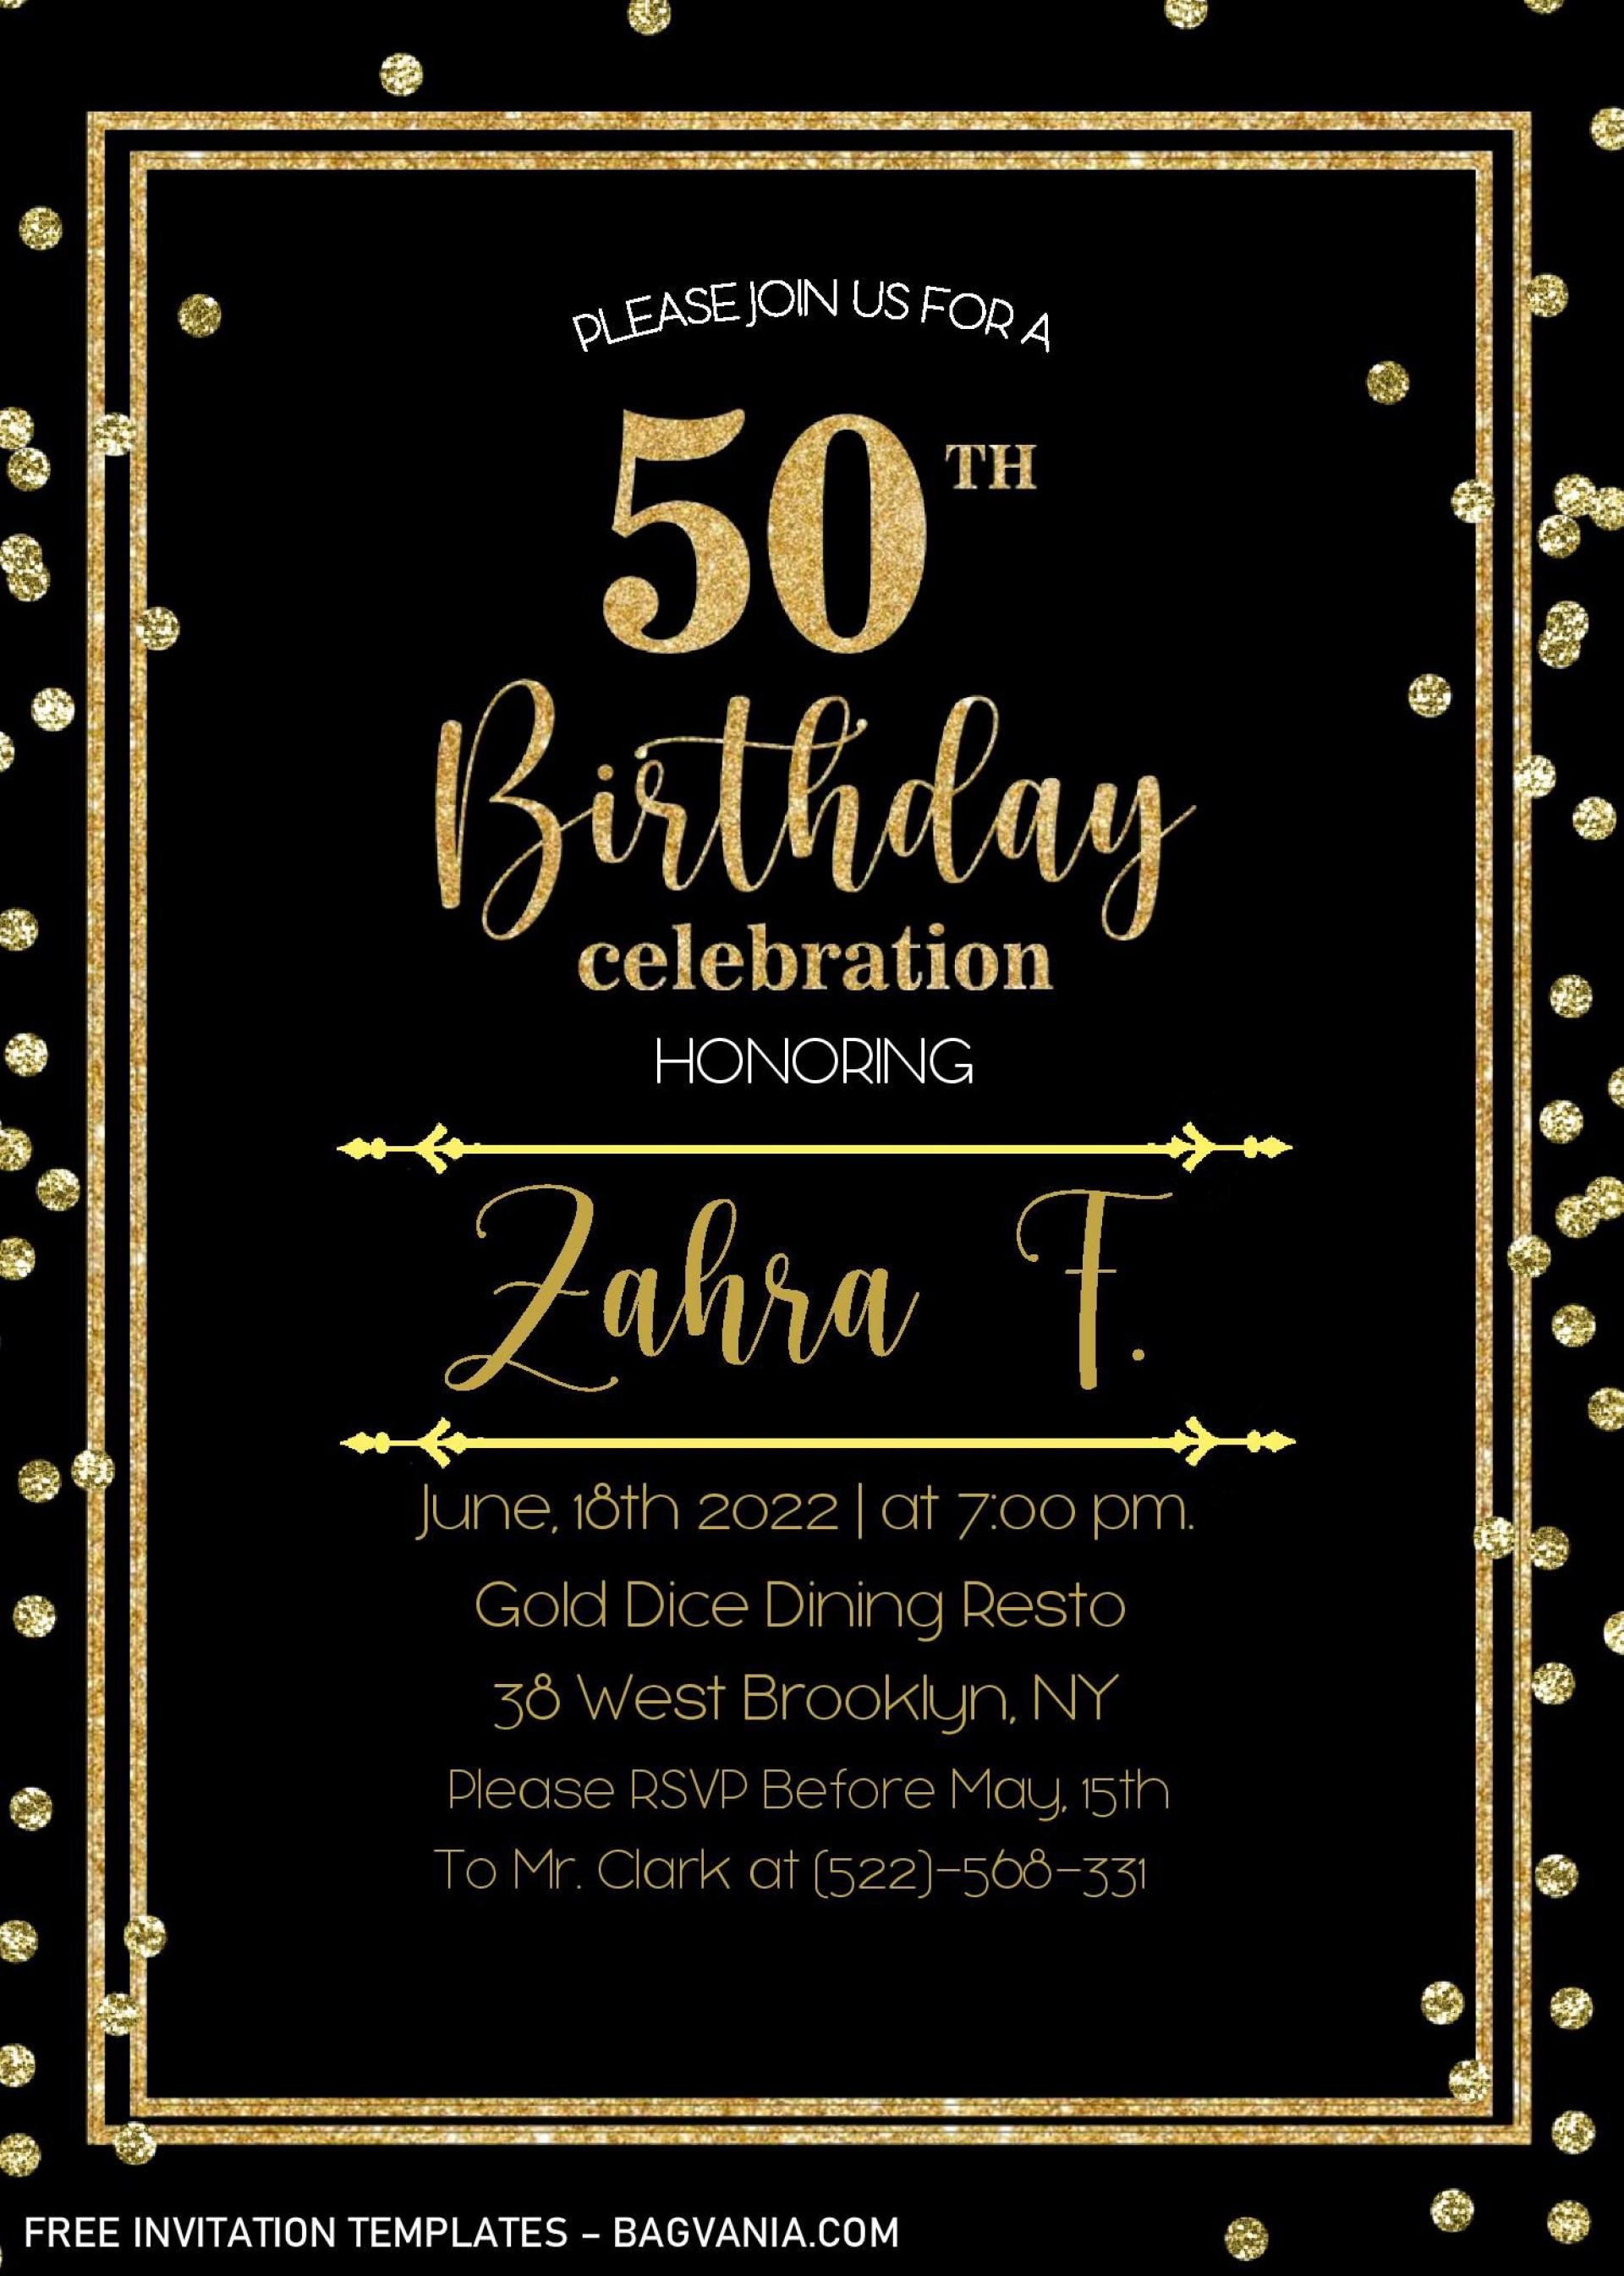 002 Striking Microsoft Word 50th Birthday Invitation Template Image  Wedding Anniversary Editable1920